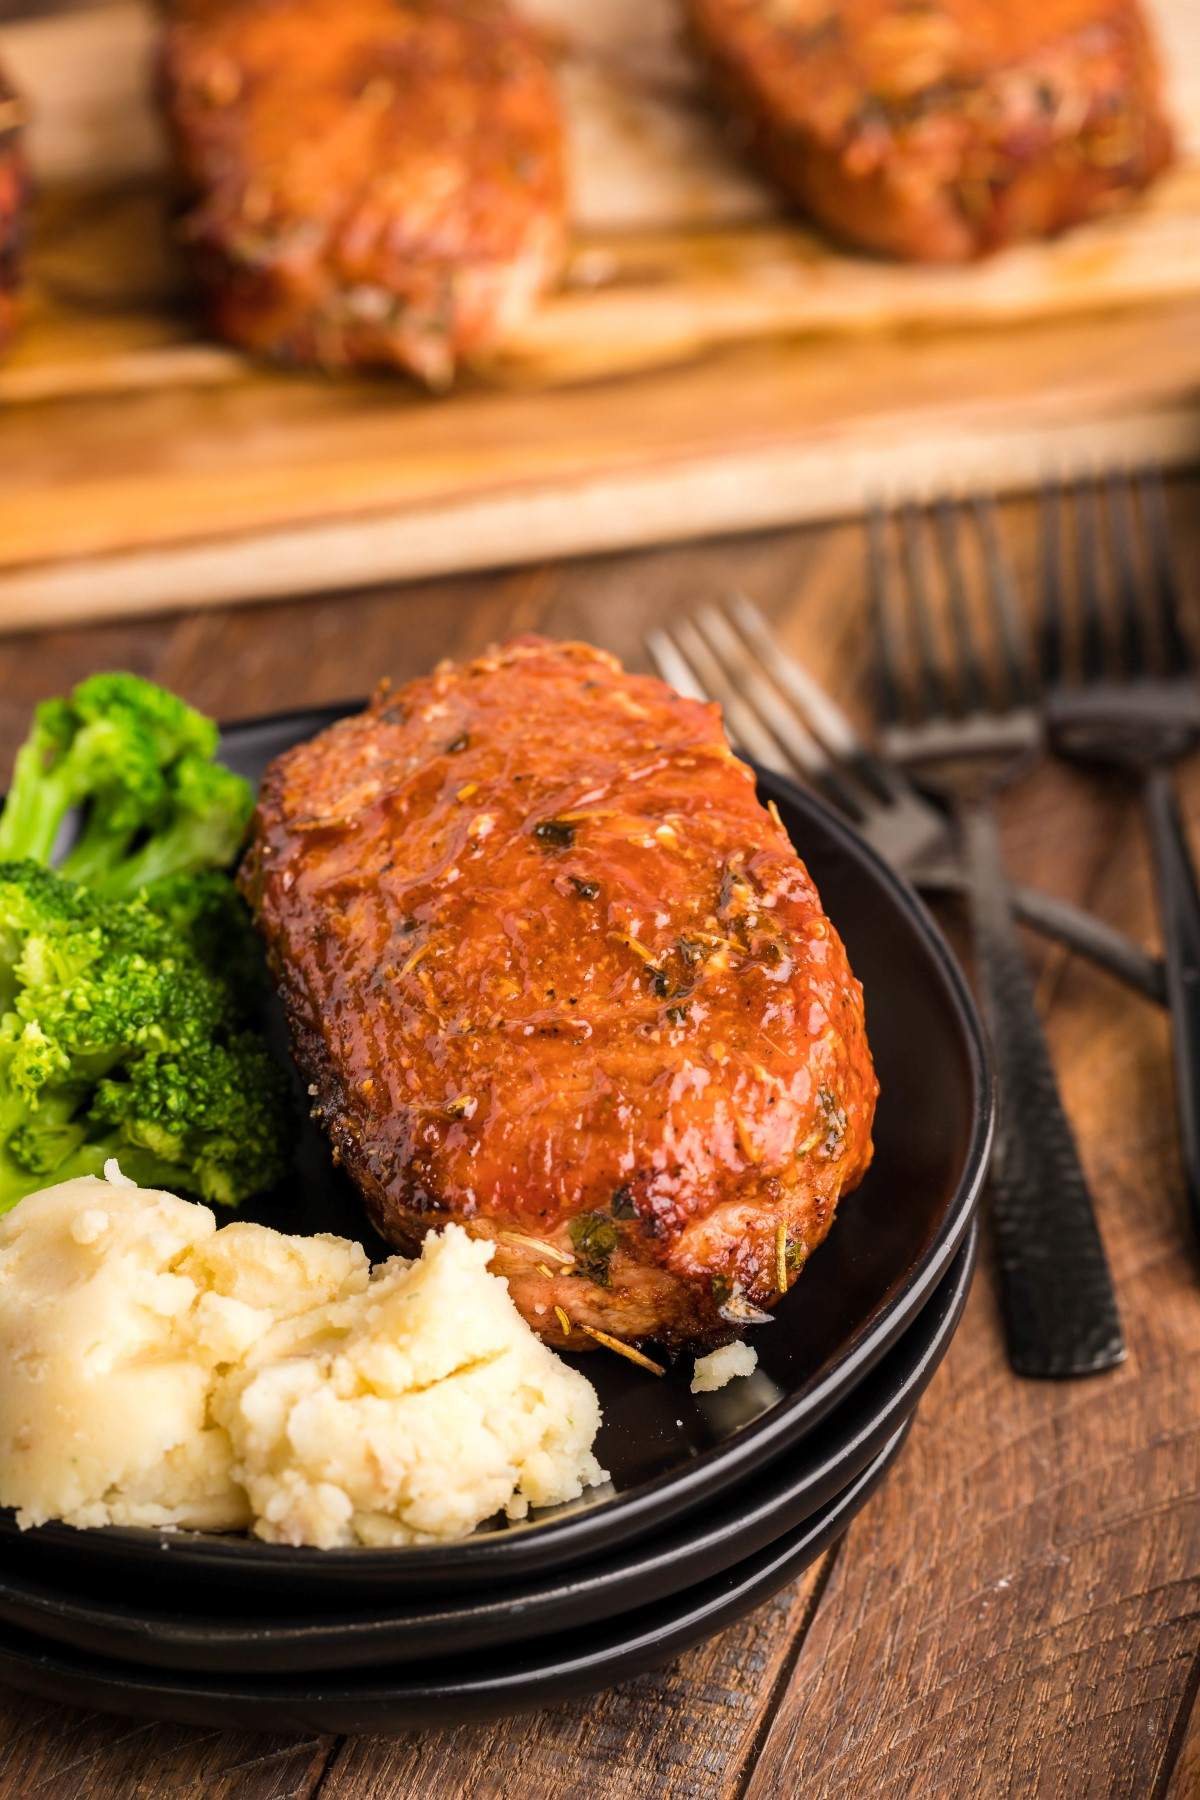 Smoked pork chop on a black plate with broccoli and mashed potatoes.